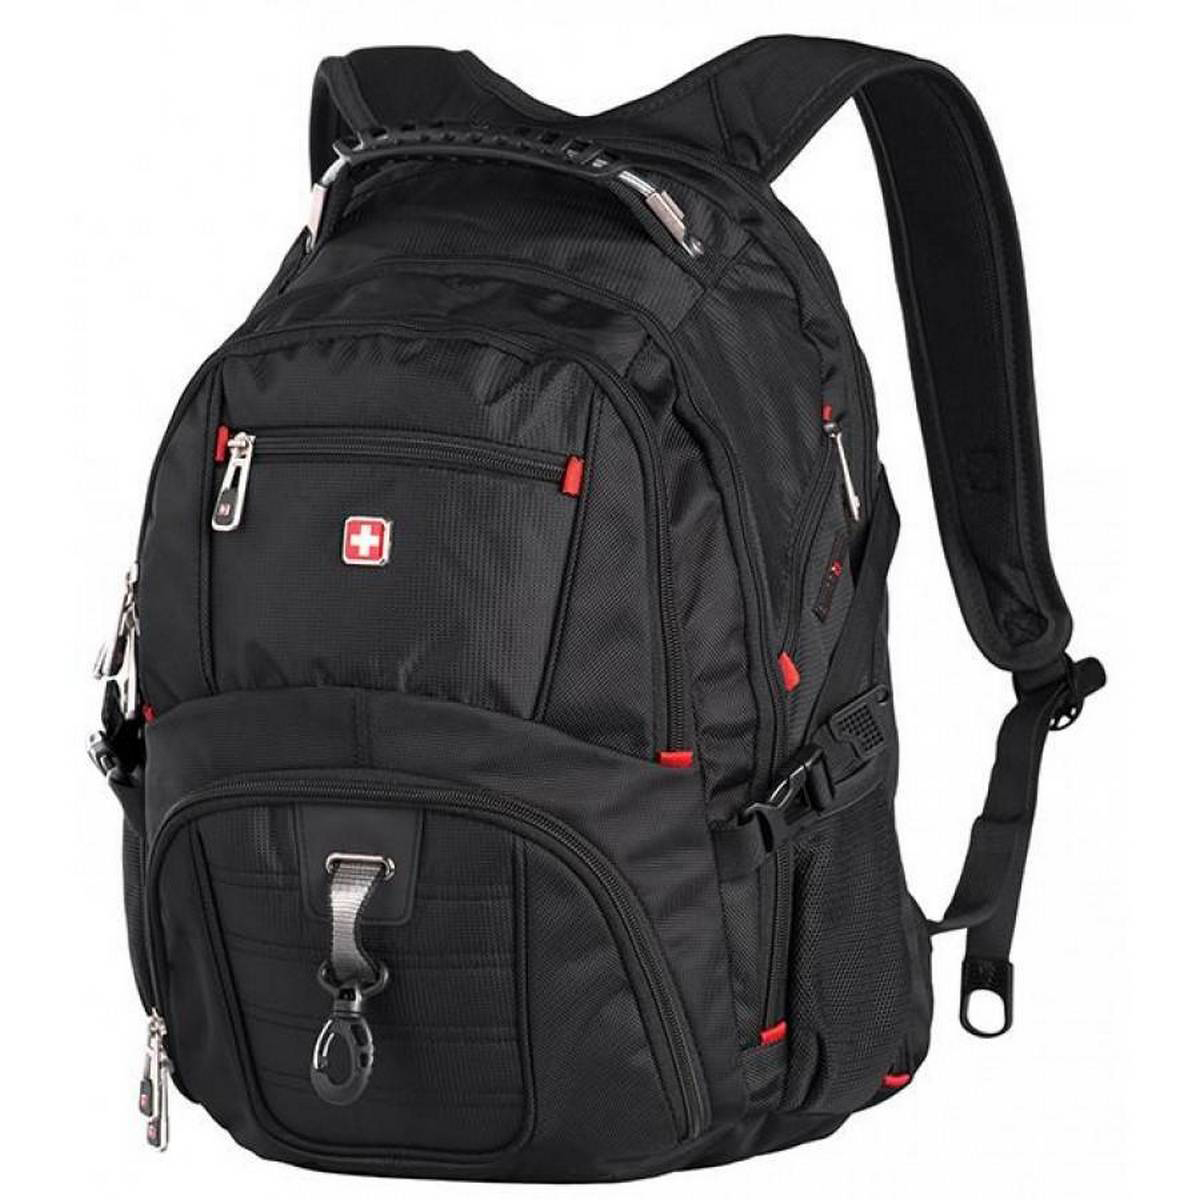 SwissWin Laptop Backpack  15.6 inches Water proof Men's Luggage & Travel / Sports Bag